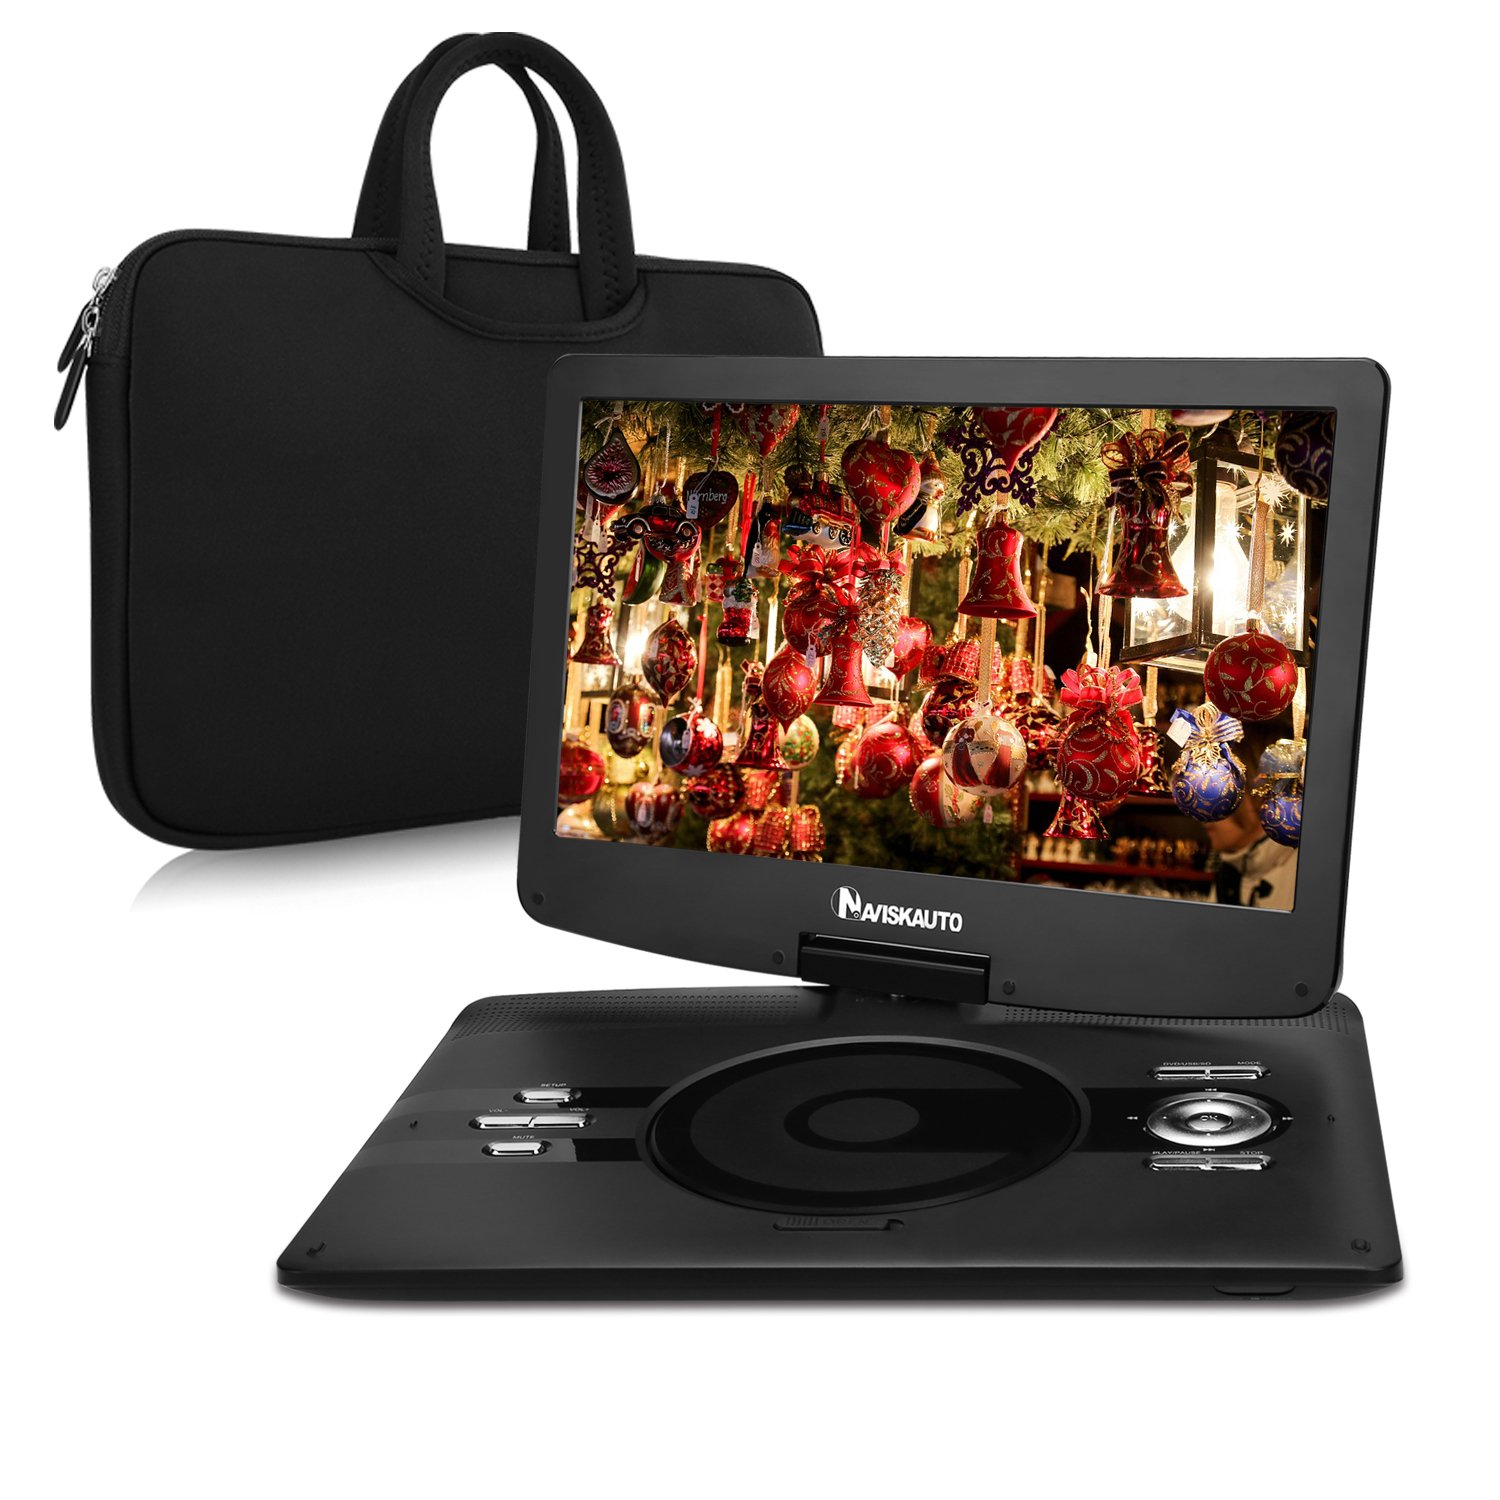 NAVISKAUTO 12.5 inch HD Portable DVD/CD Player USB/SD Reader with 1366x768 Digital TFT 270° Swivel Screen, 5-Hour Built-In Rechargeable Battery, 3m AC/DC Adapter and Carrying Case-Black (12.5 inches)